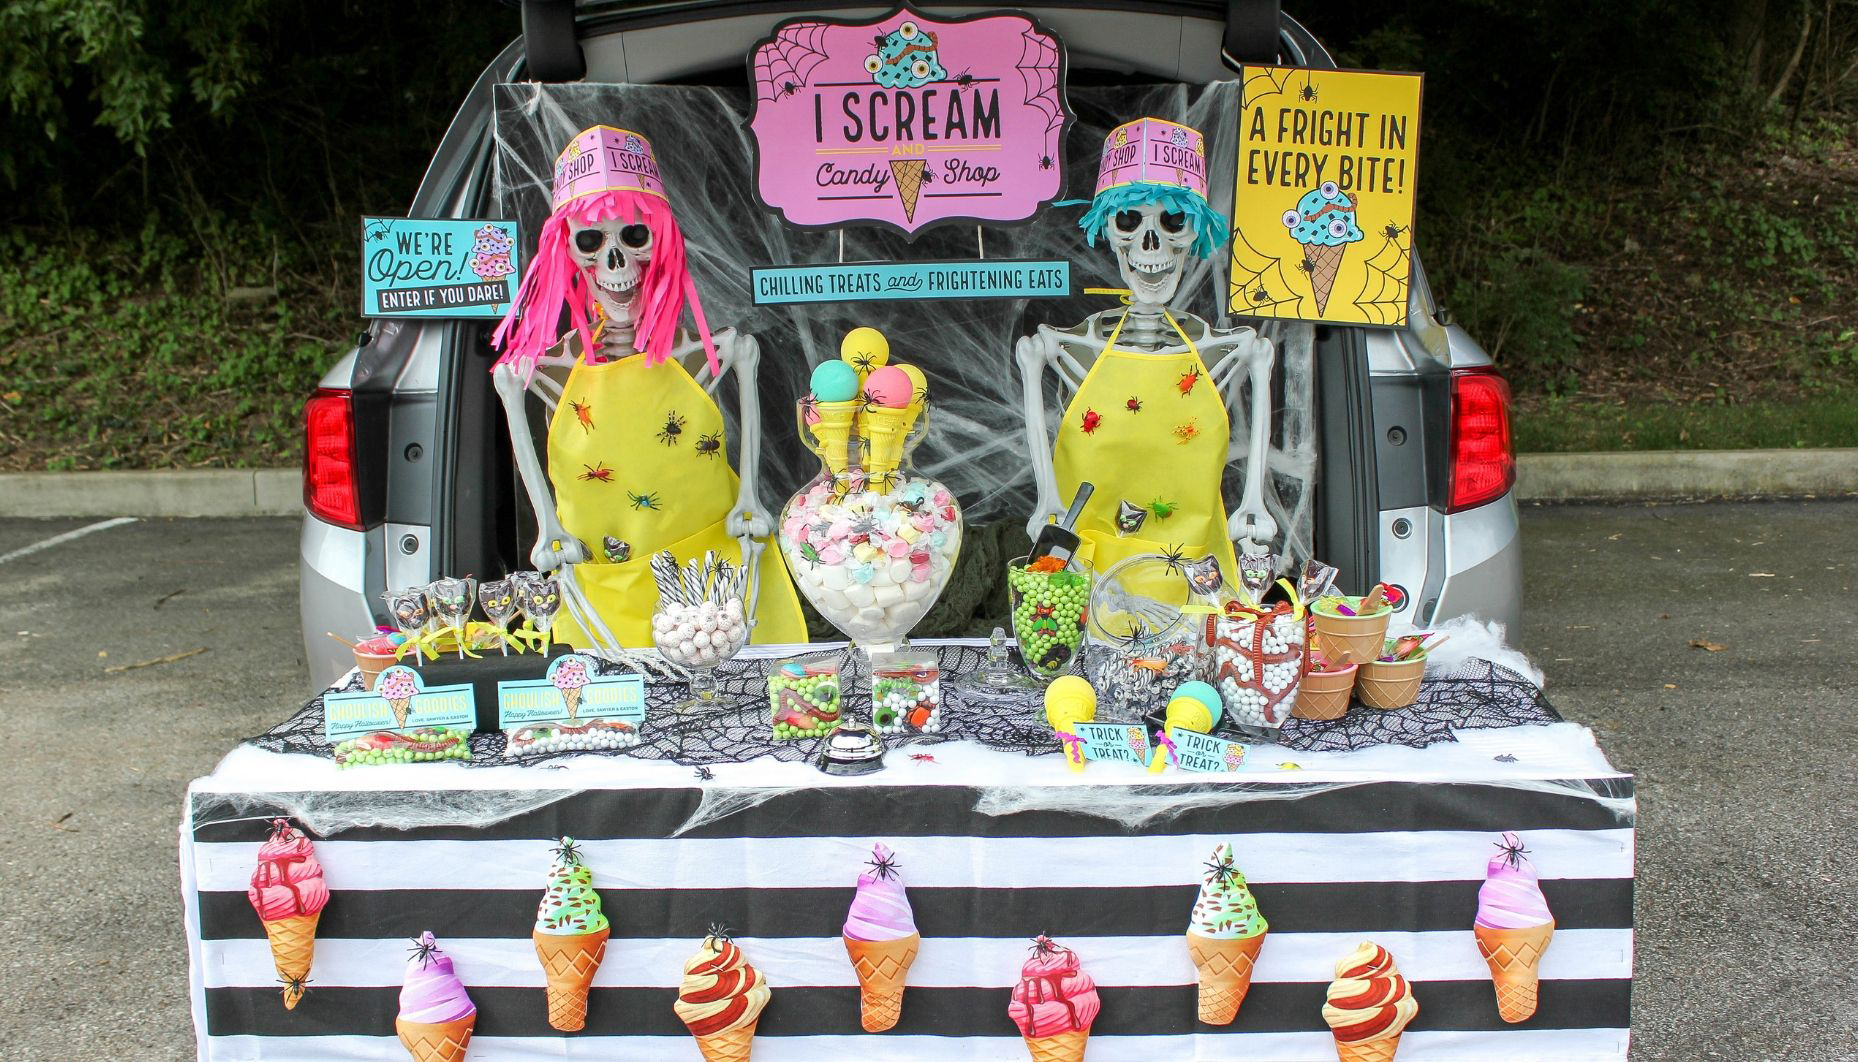 I scream and candy shop trunk or treat idea, ice cream and candy shop, halloween, trunk or treat, candy shop trunk or treat, skeleton candy shop trunk or treat, skeletons, halloween ice cream shop, Just Add Confetti, free printables, Fun365, Oriental Trading, halloween ice cream, I scream, halloween candy shop